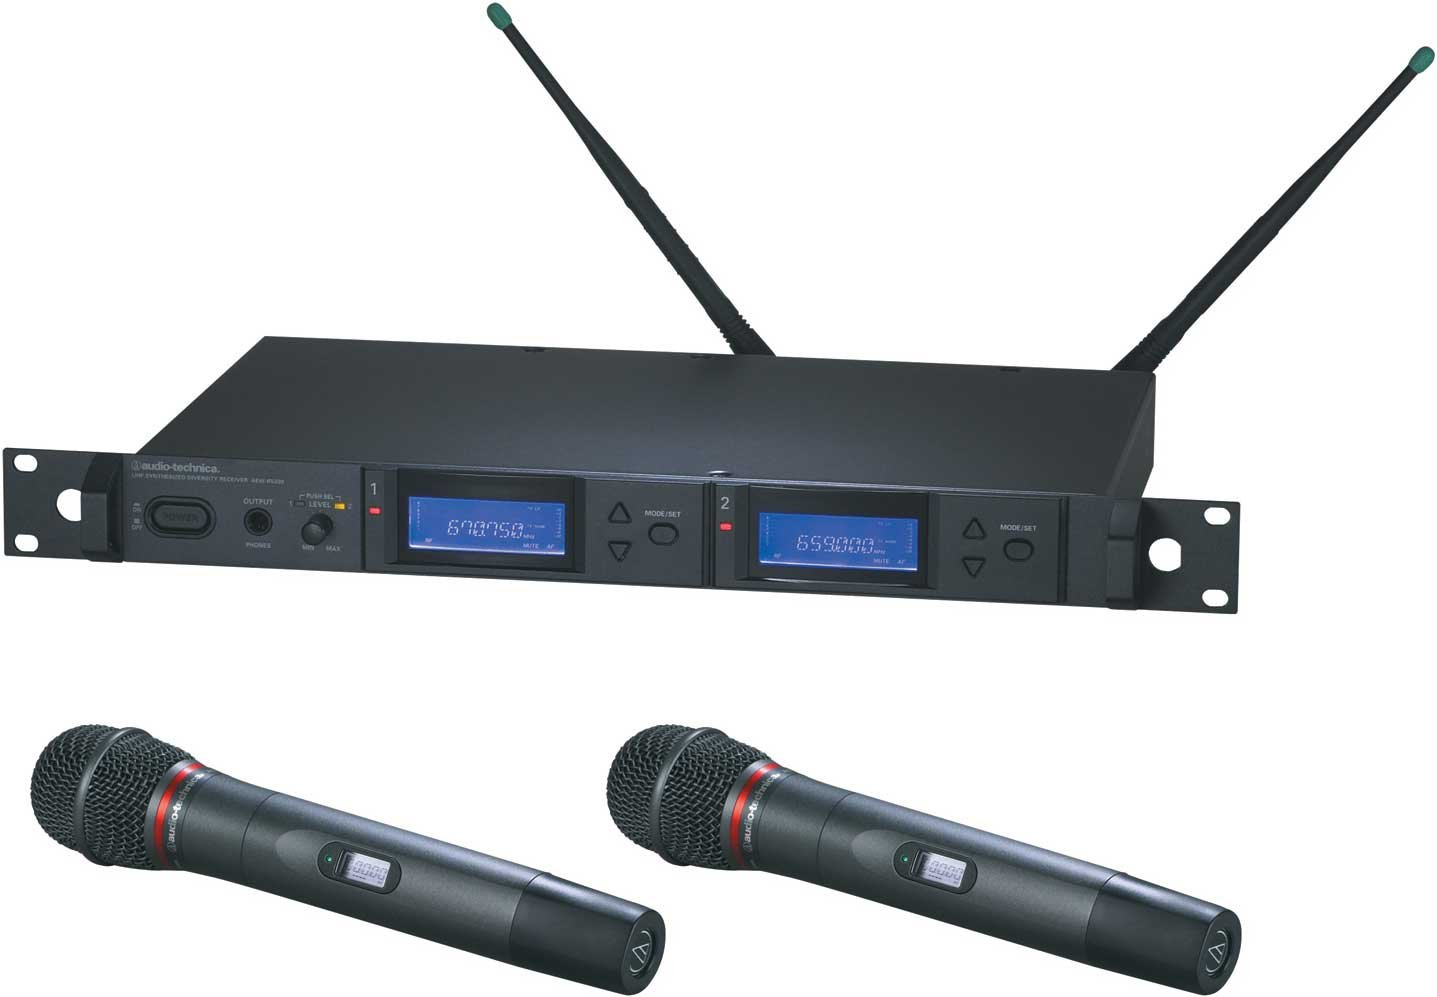 Dual Wireless Microphone Handheld System with 2 x AEW-T6100a Hypercardioid Dynamic Mics, UHF Band C: 541.500 MHz to 566.375 MHz